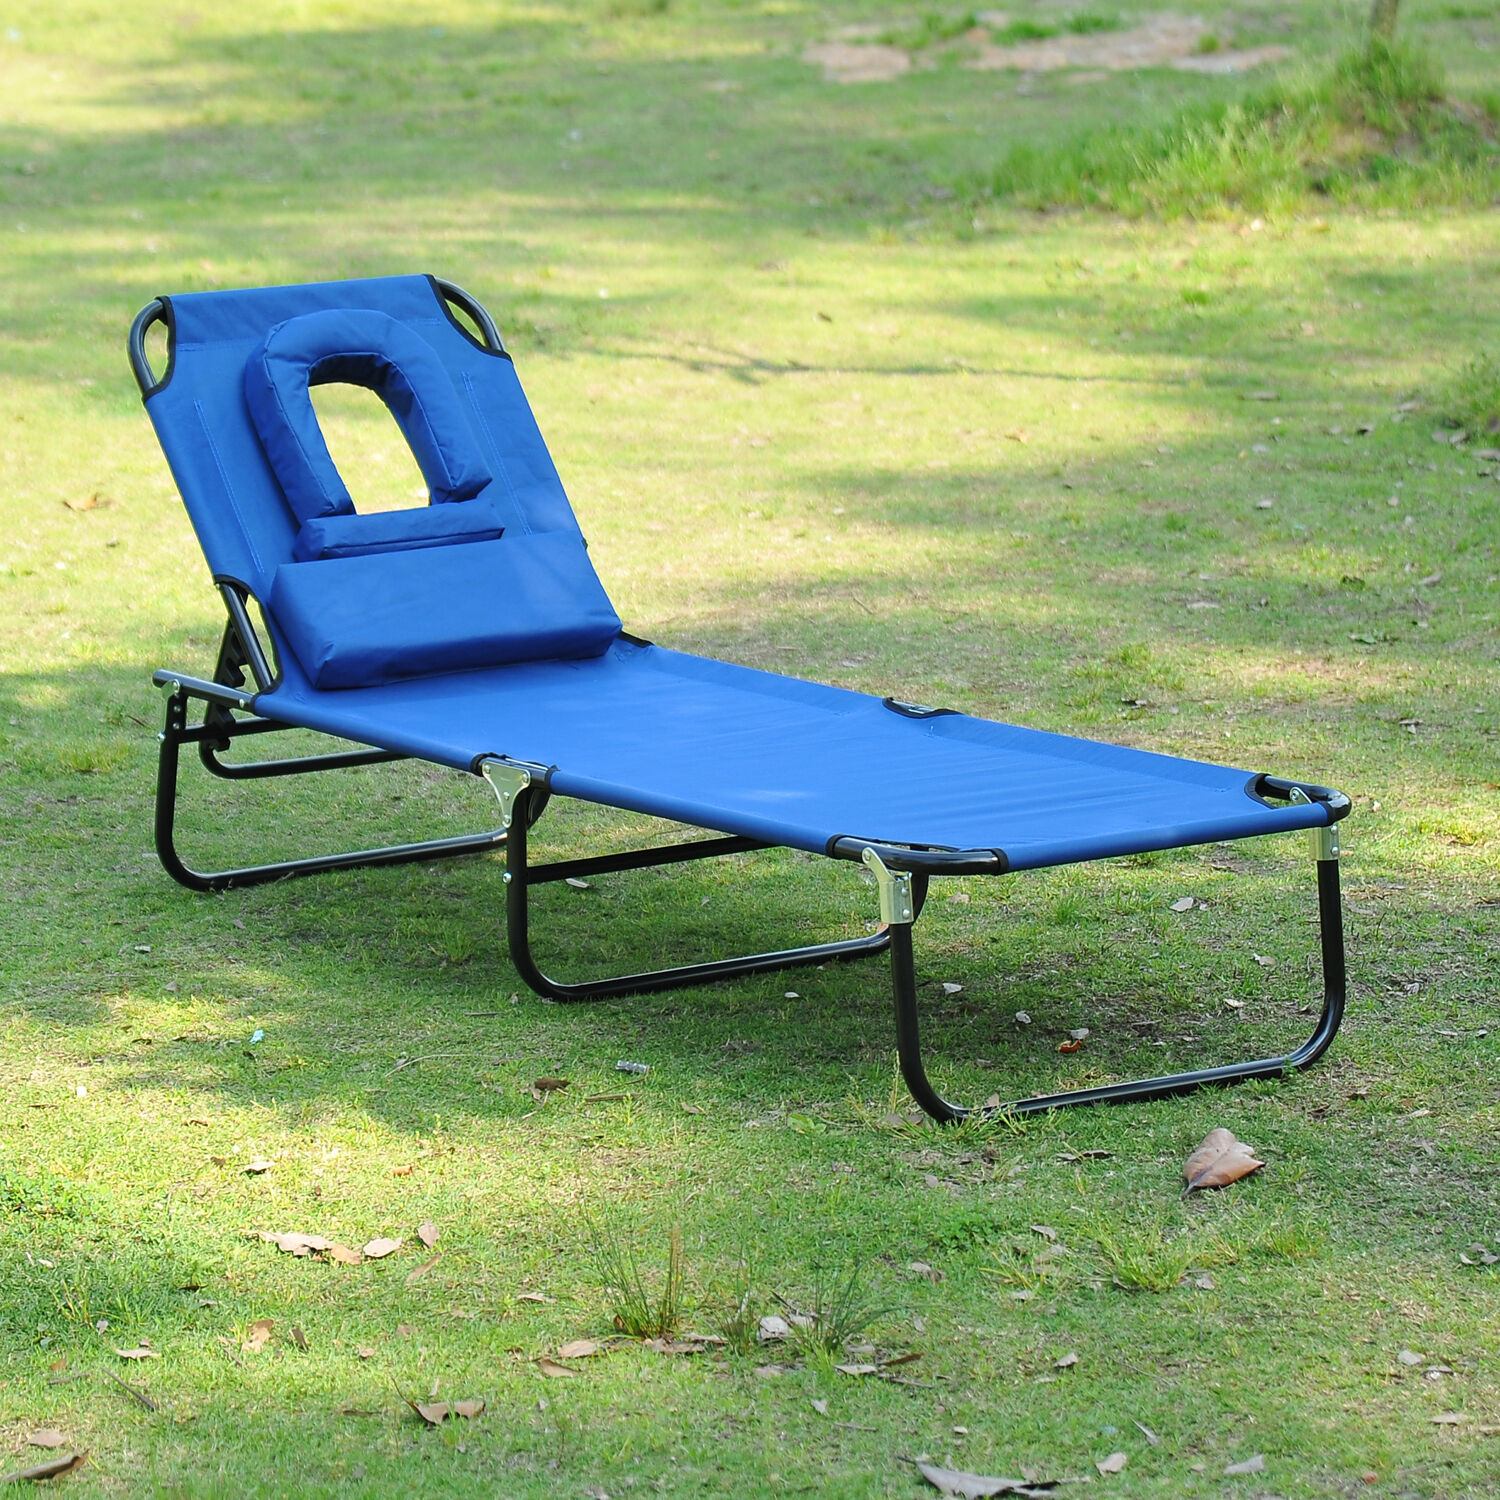 Folding Lounge Chairs Outdoor Lounge Chair Portable Folding Garden Sun Lounger